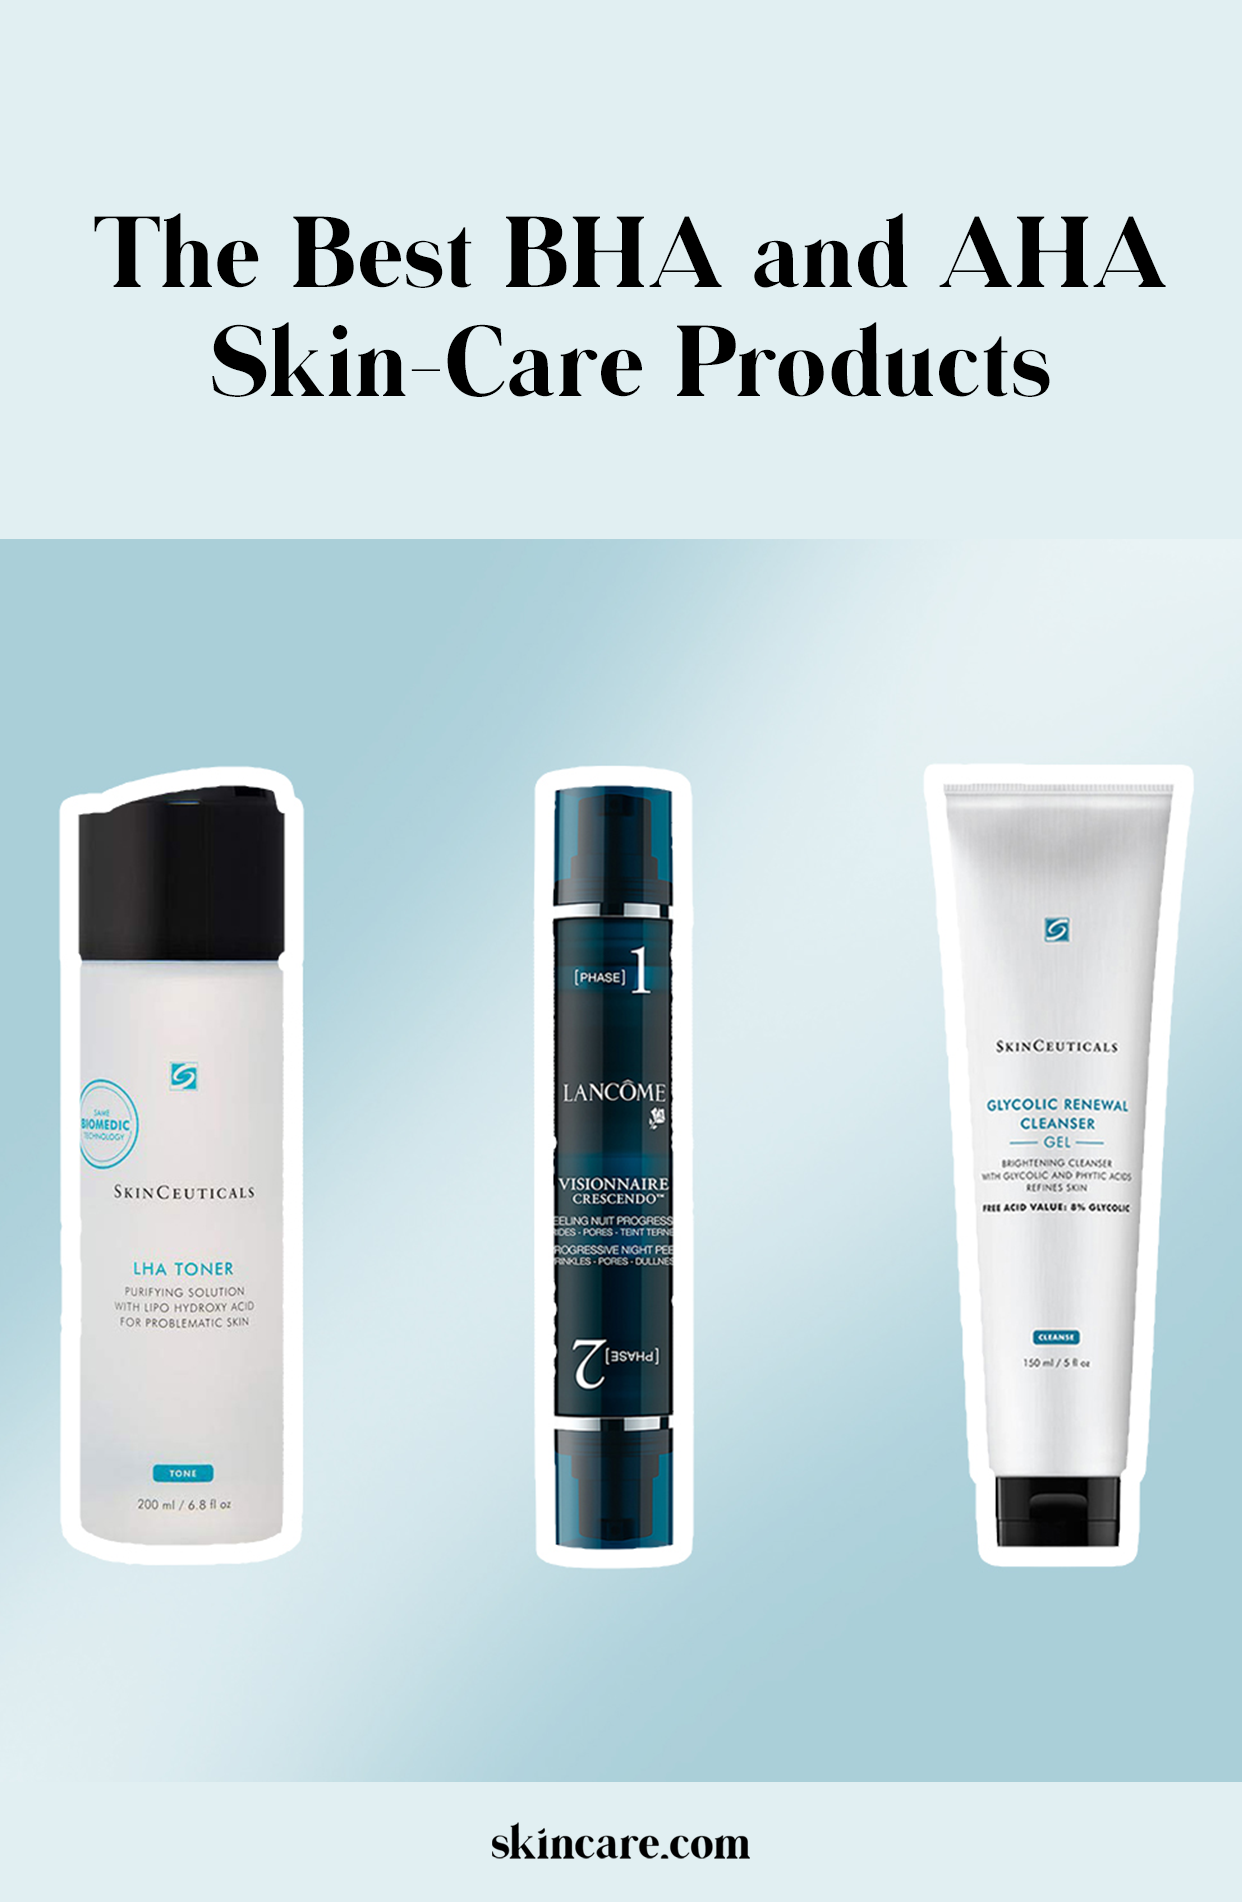 The Best Aha And Bha Exfoliating Skin Care Products According To Our Editors Skincare Com By L Oreal Skin Care Affordable Skin Care Health Skin Care